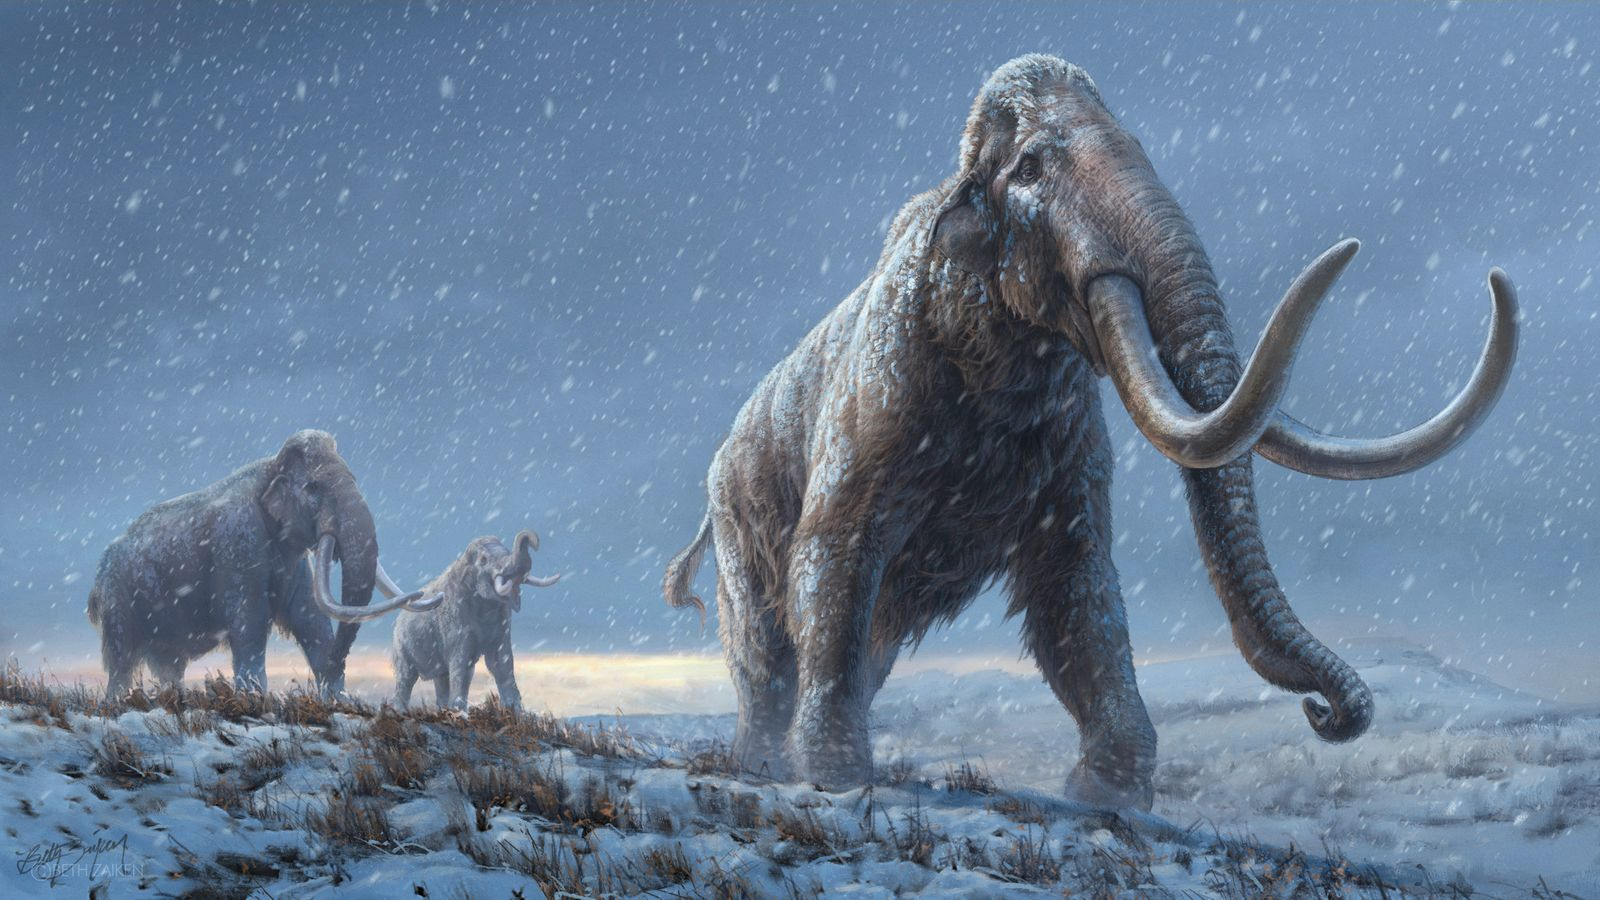 DNA-SCIENCE-GENOME-MAMMOTH-PALAEONTOLOGY